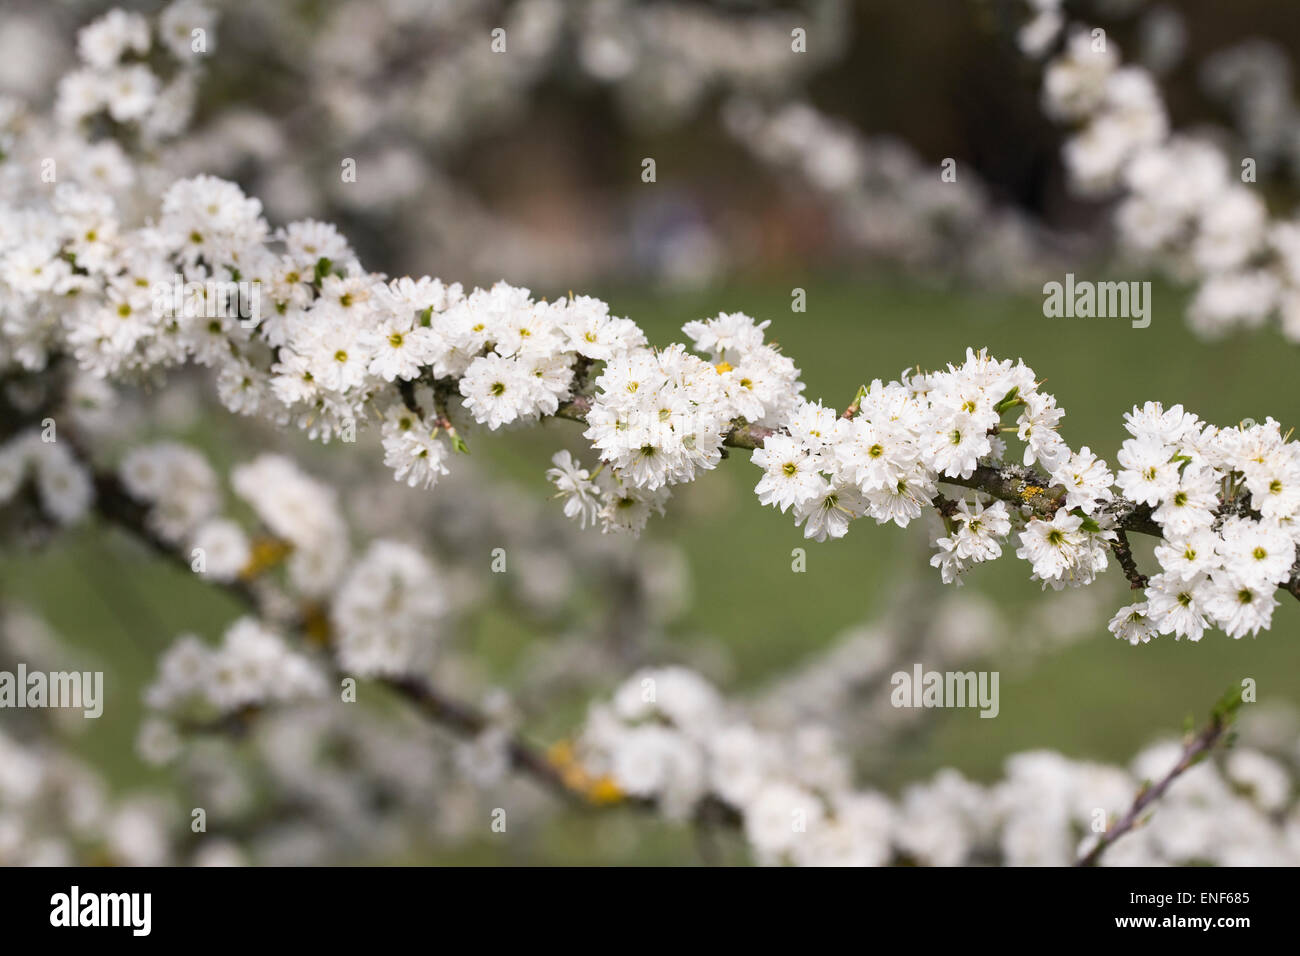 Prunus spinosa 'Plena'. Blackthorn flowers in Spring. Stock Photo